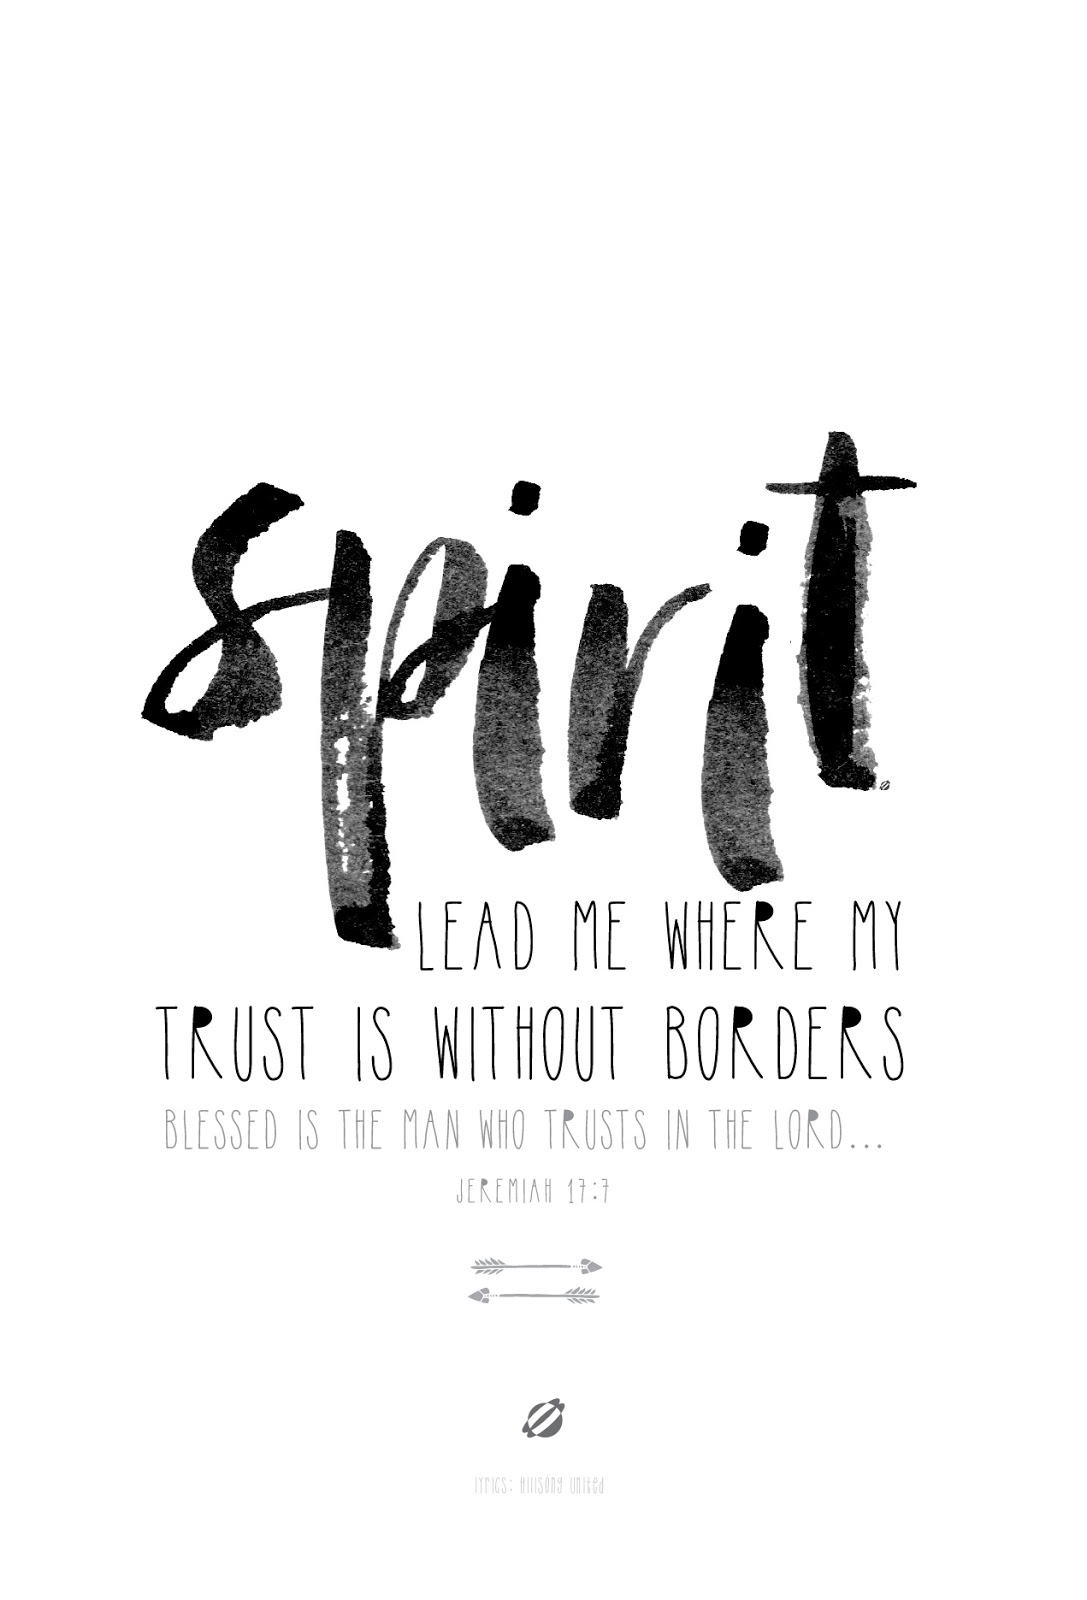 LostBumblebee ©2015 Spirit Lead Me | FREE PRINTABLE | Personal use Only.